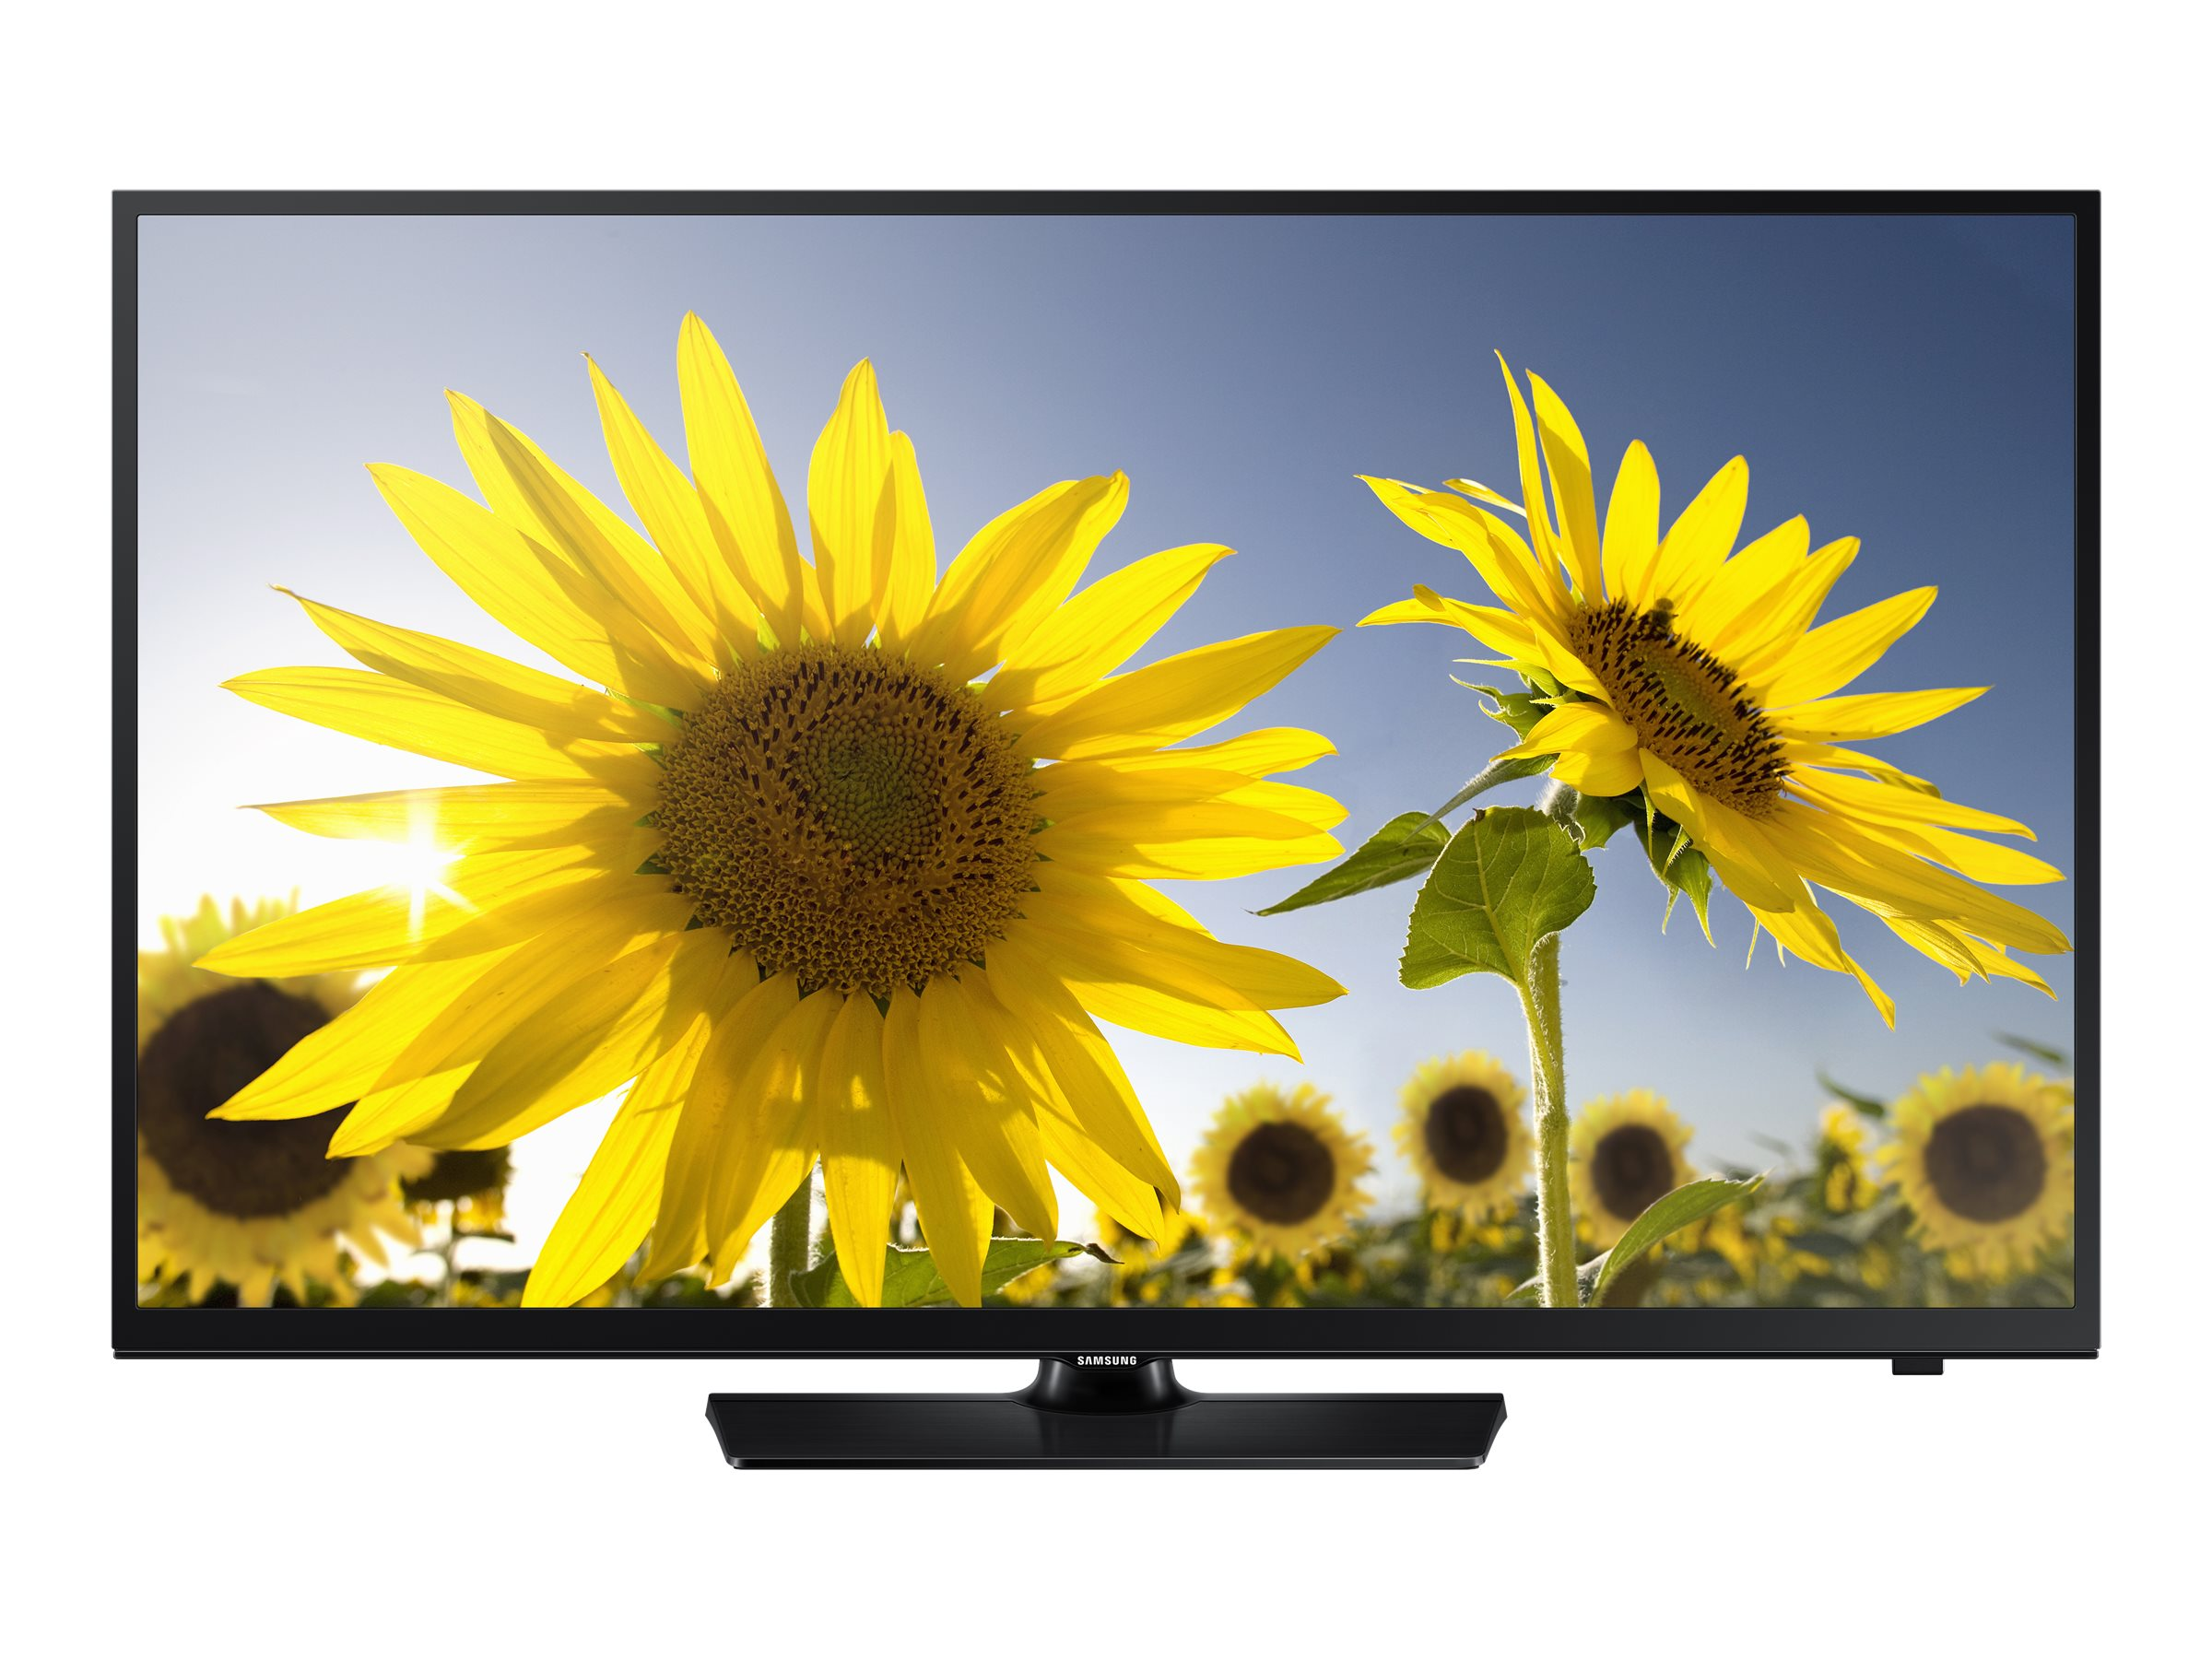 Samsung 40 H4005 LED-LCD TV, Black, UN40H4005AFXZA, 18867614, Televisions - LED-LCD Consumer